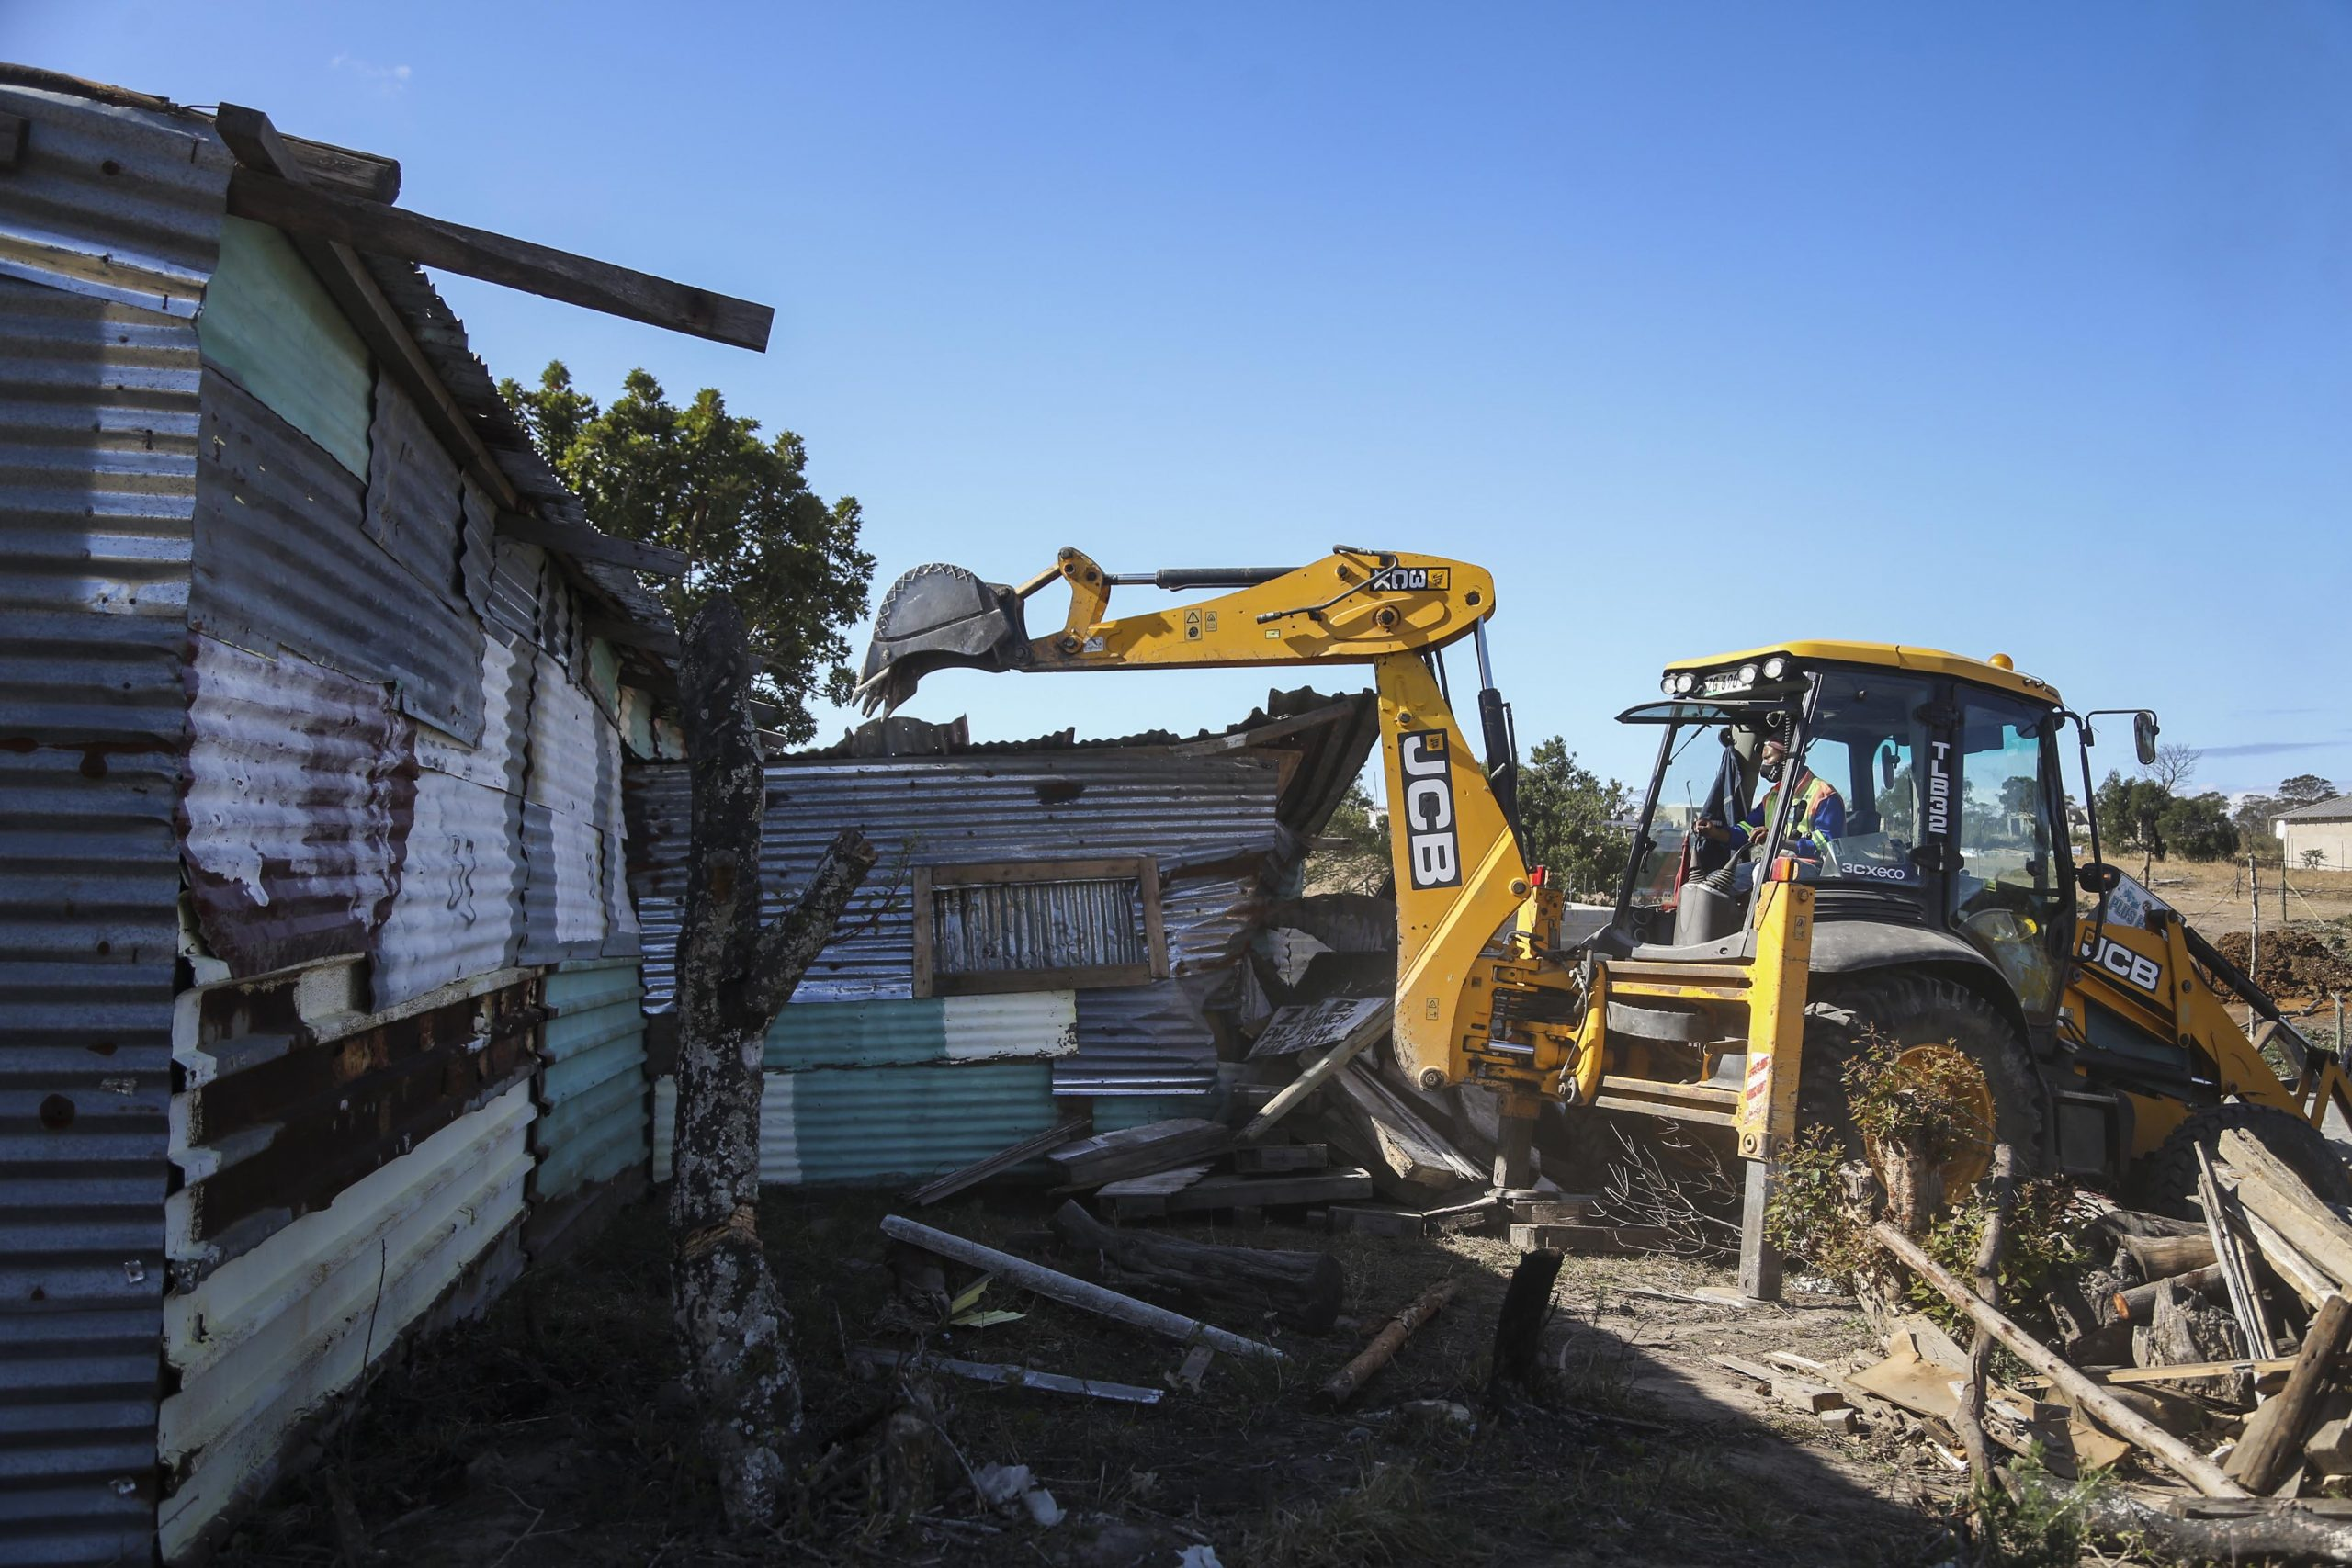 27 July 2020: The Zion Christian Church structure being demolished. Nearly 200 residents were left homeless by the eviction.